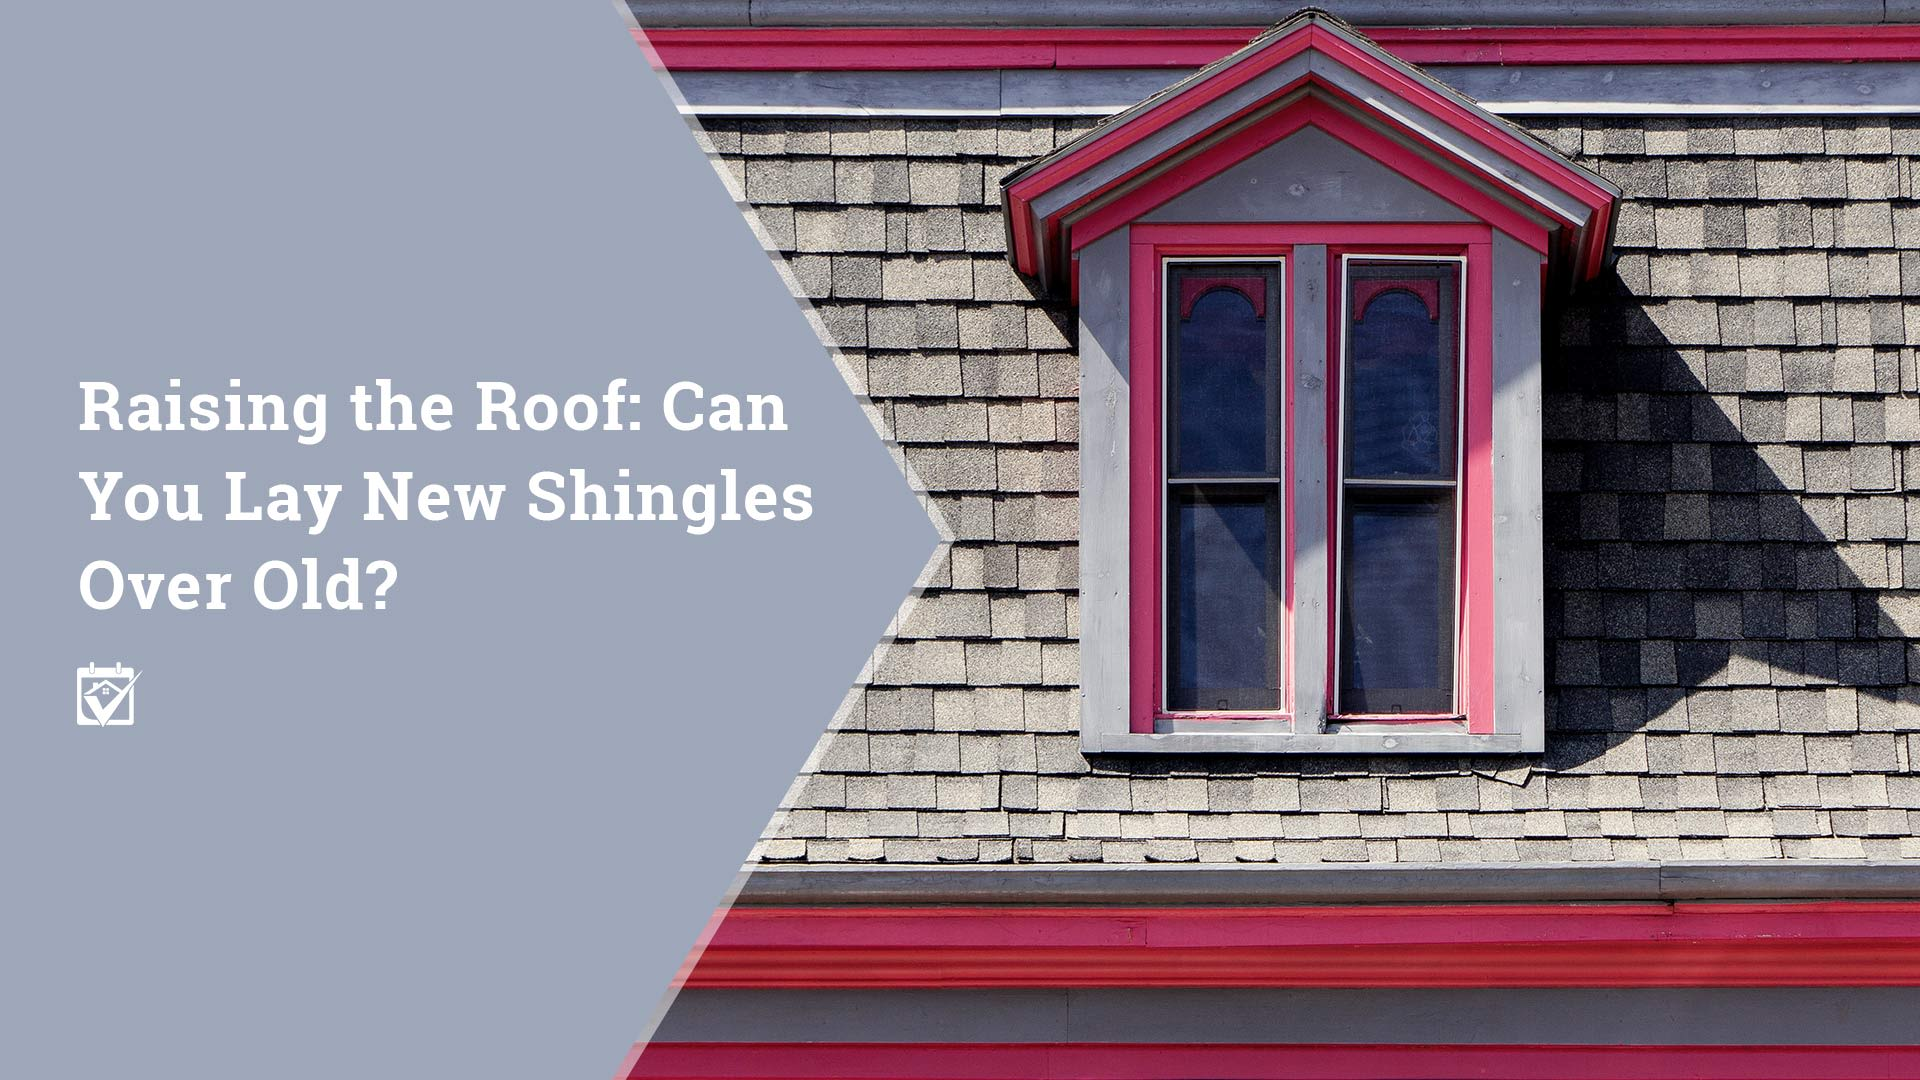 When to Tear Off or Re-Shingle Your Roof